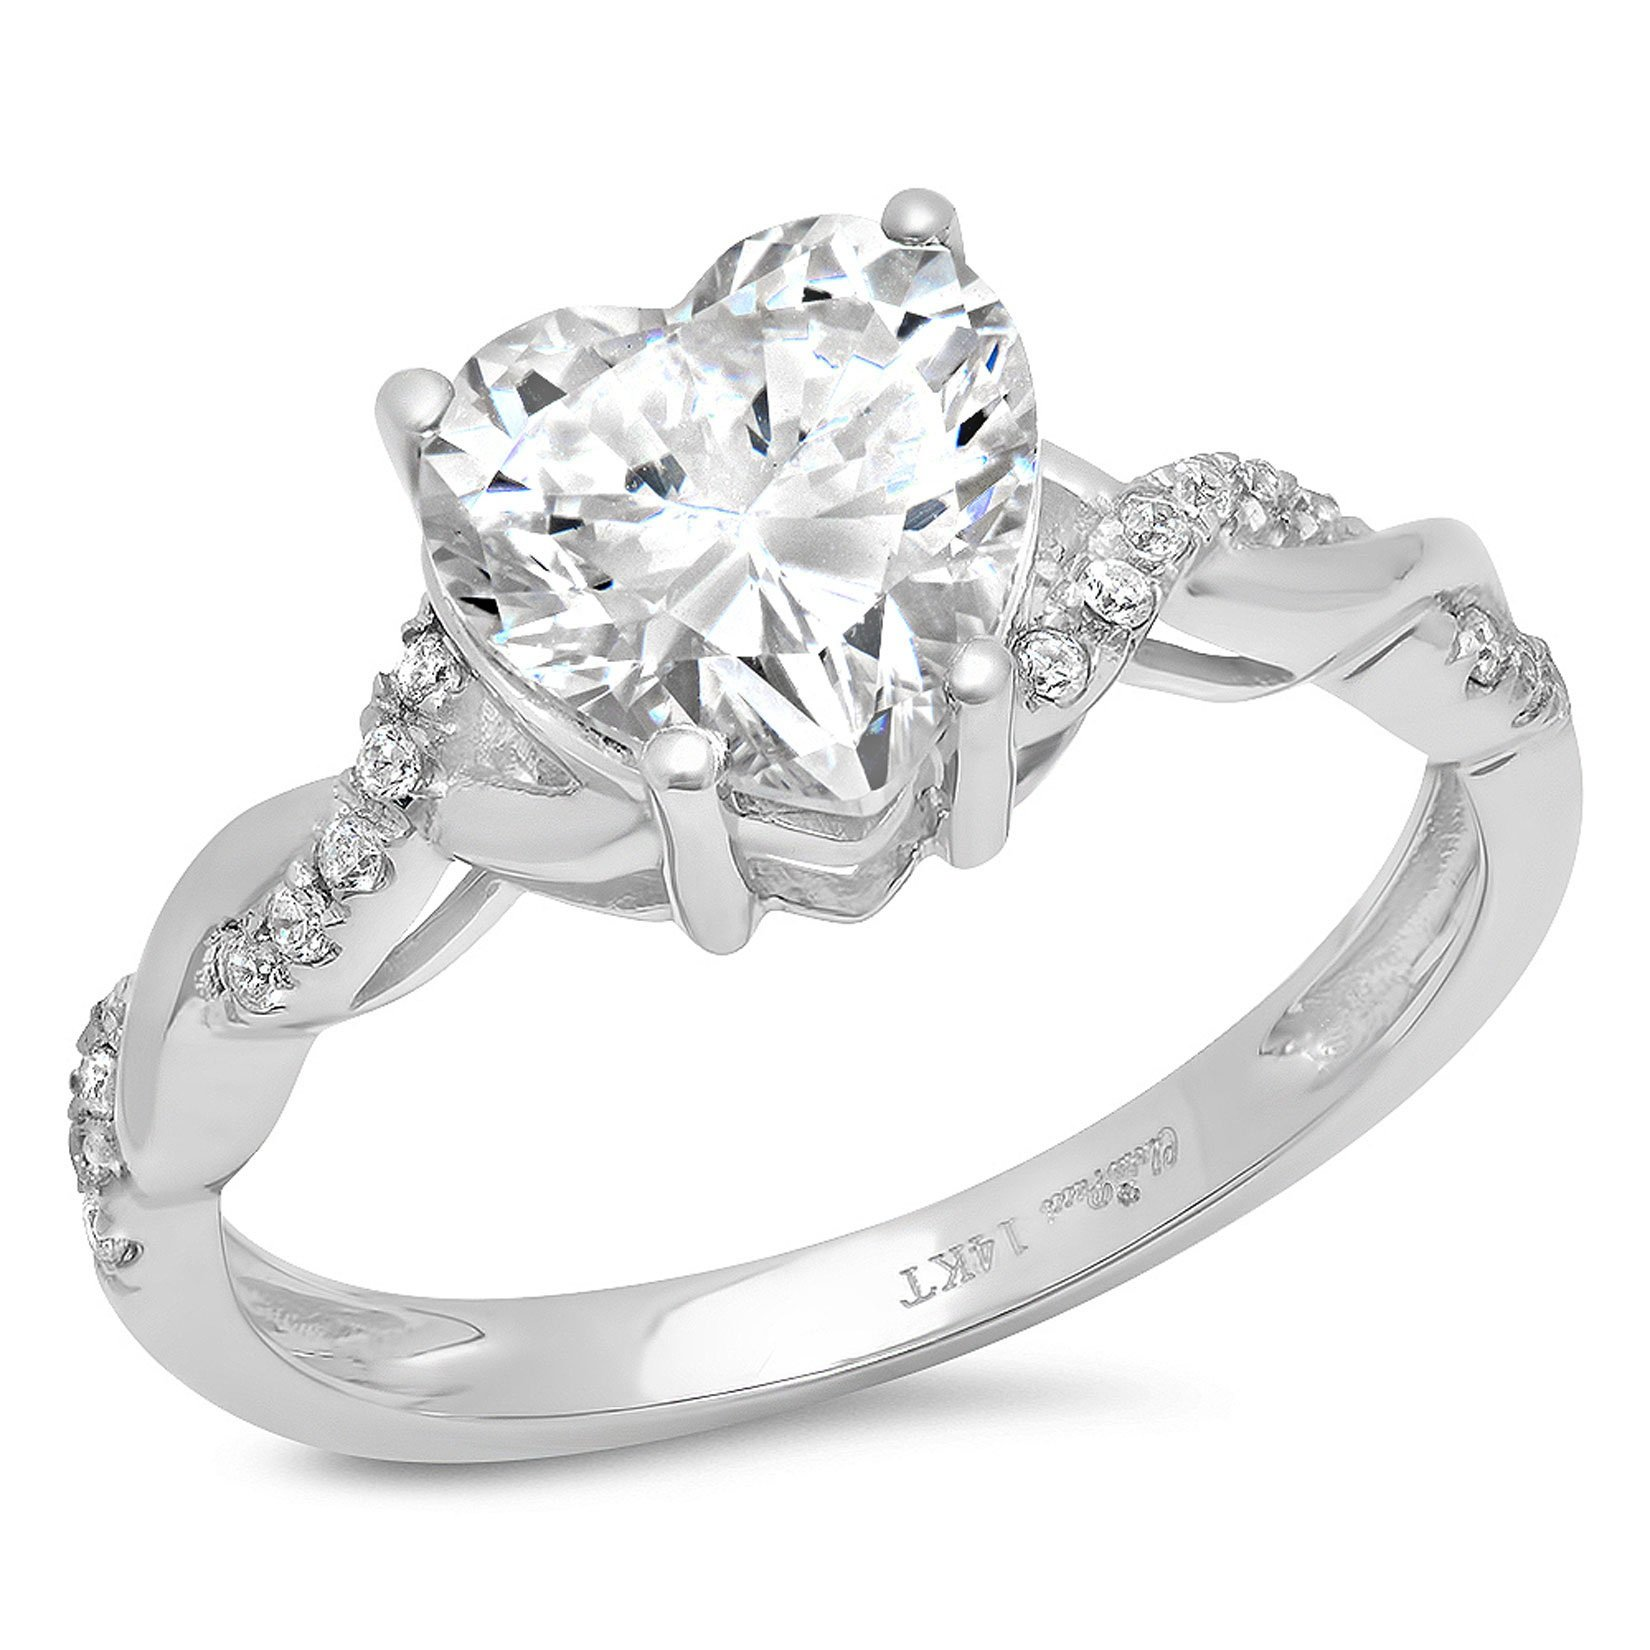 Clara Pucci 2.09 CT Heart Cut Criss Cross Twisted Wedding Engagement Bridal Ring Band 14k White, Size 10